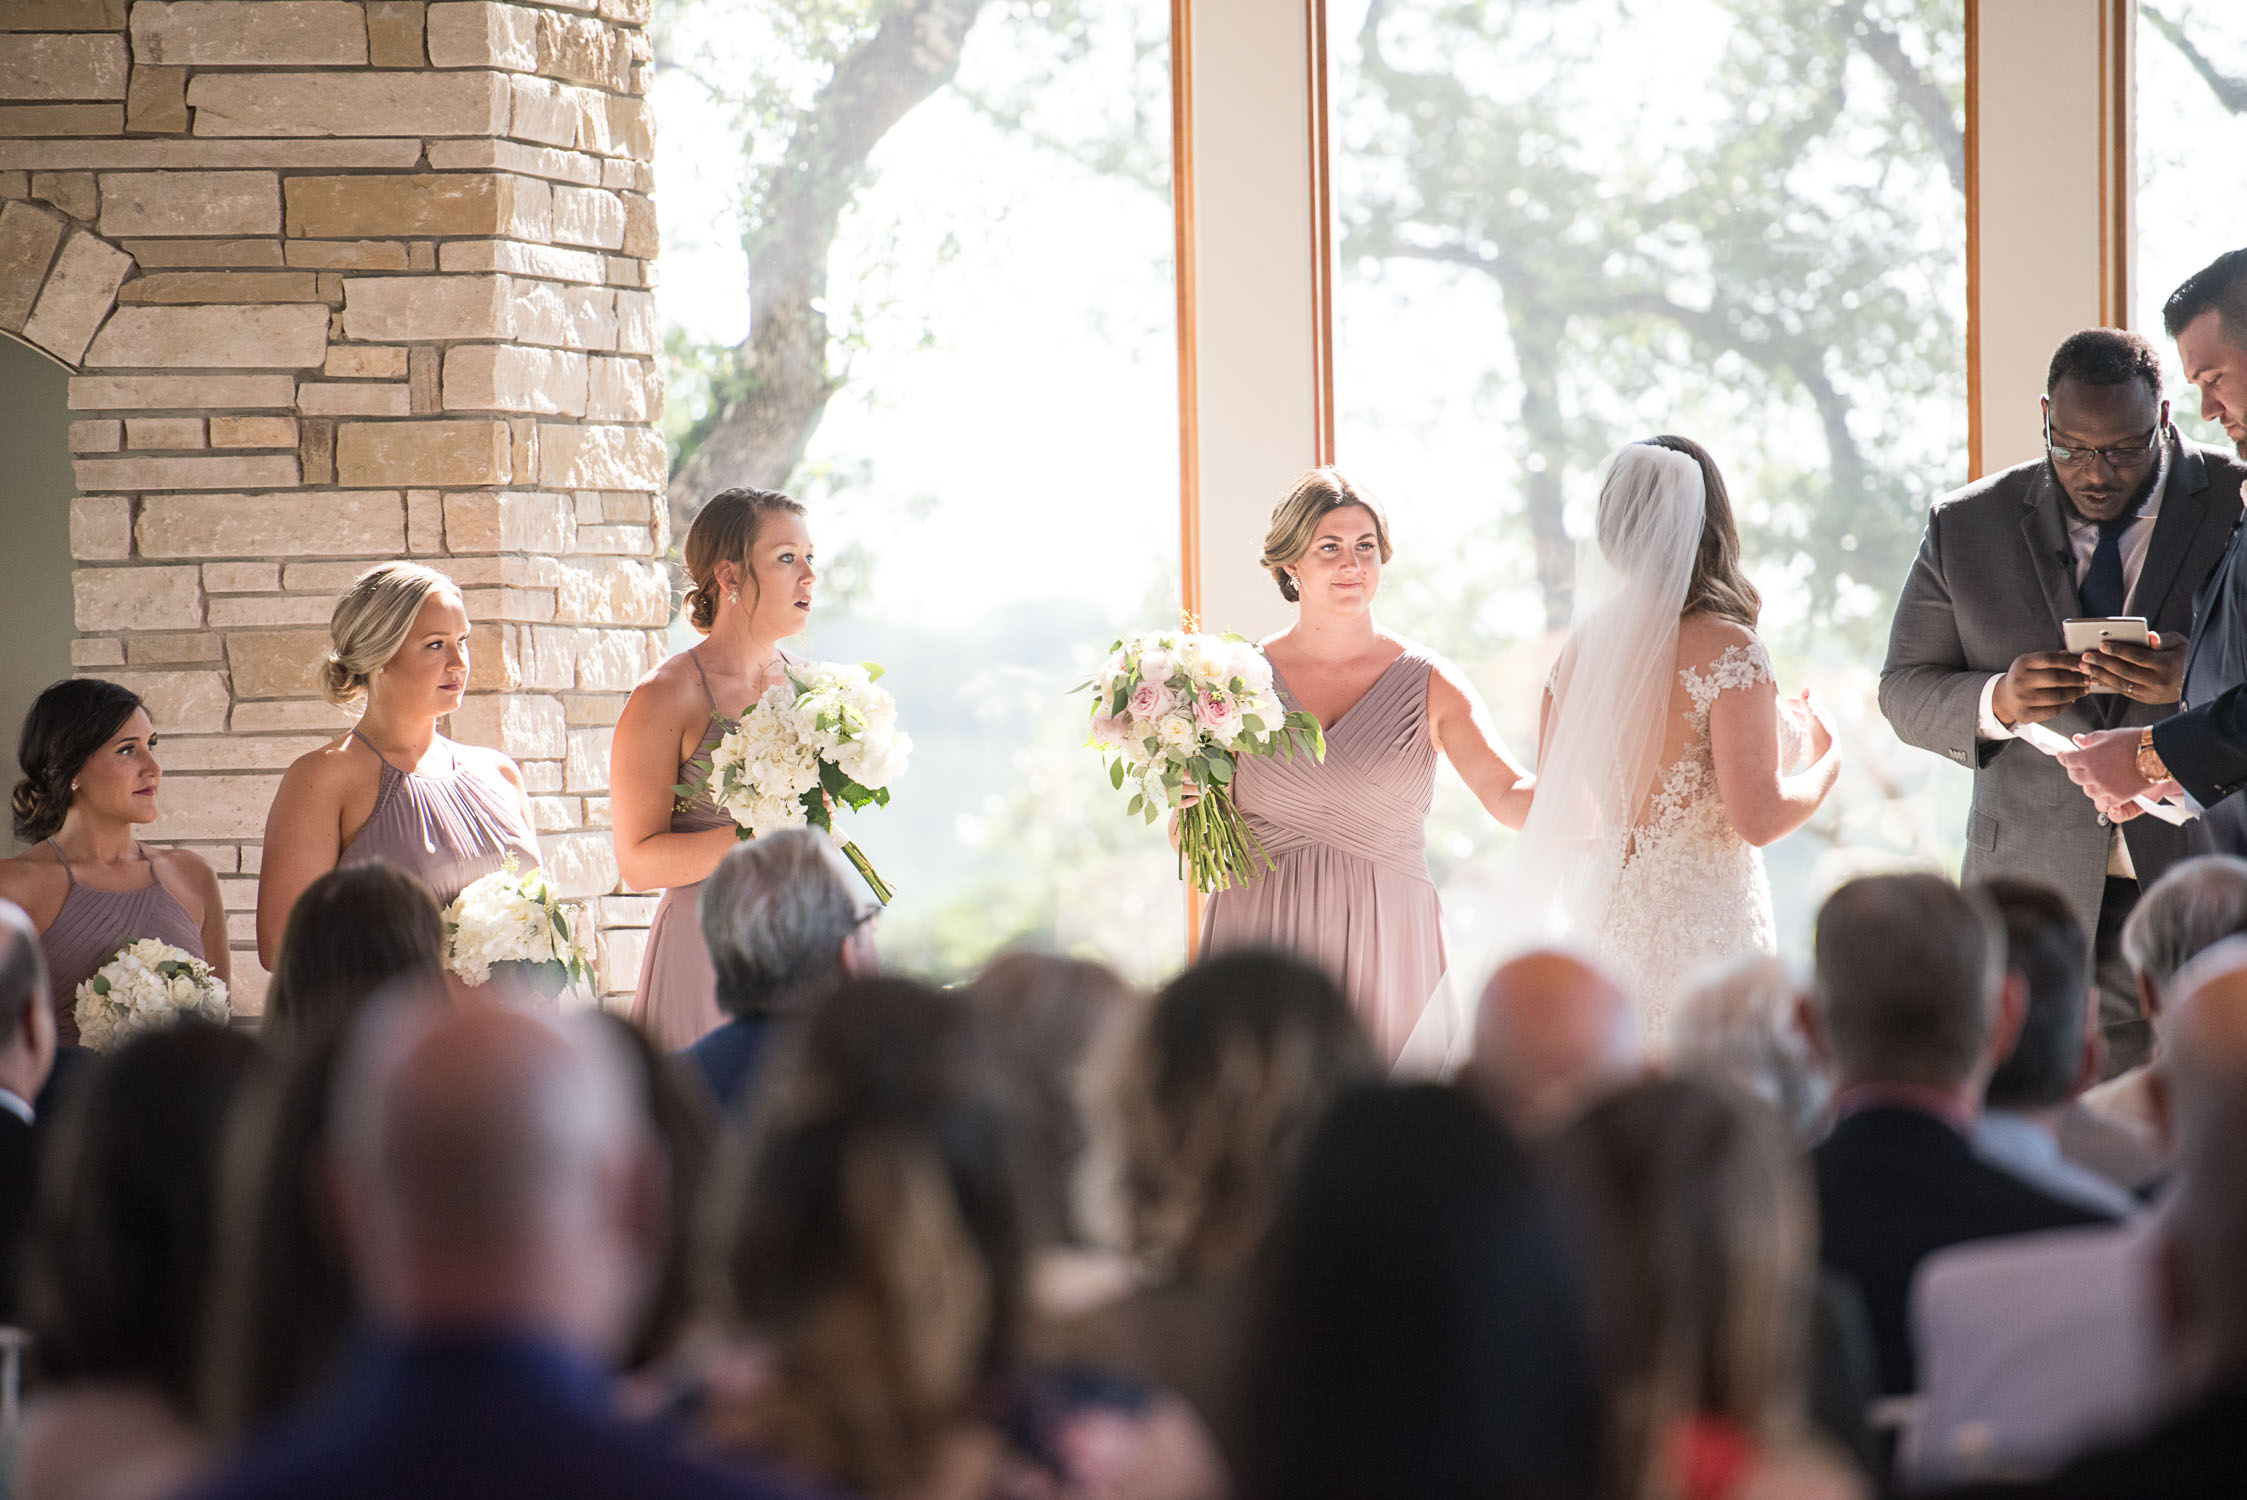 Hinton Wedding at Canyonwood Ridge Dripping Springs Texas Wedding Photography-99.jpg